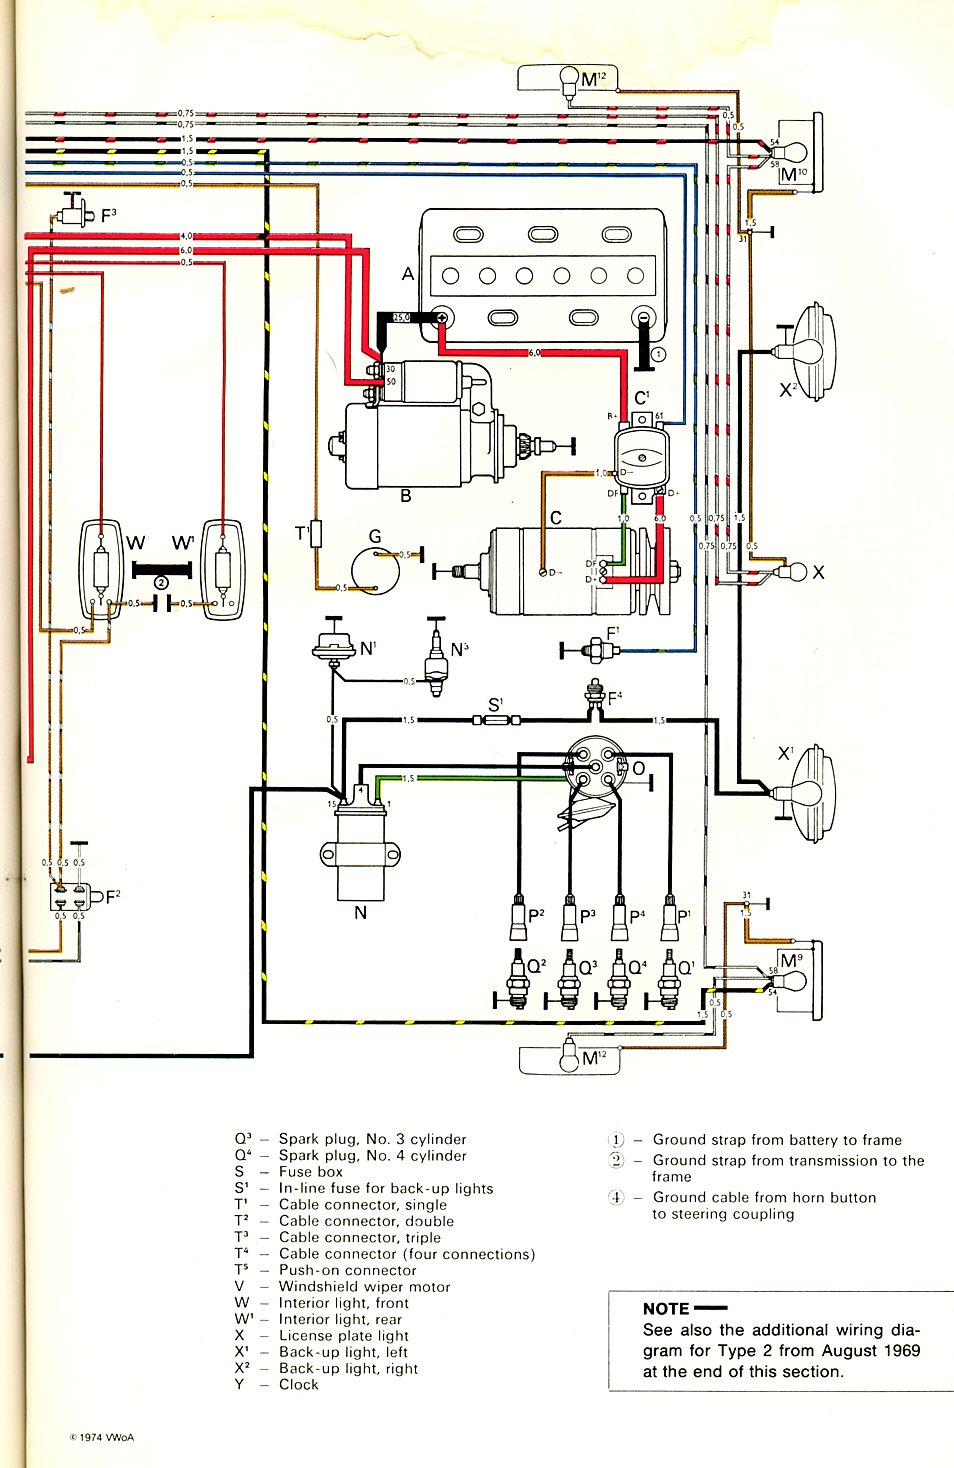 baybus_70b thesamba com type 2 wiring diagrams vw engine wiring diagram at aneh.co